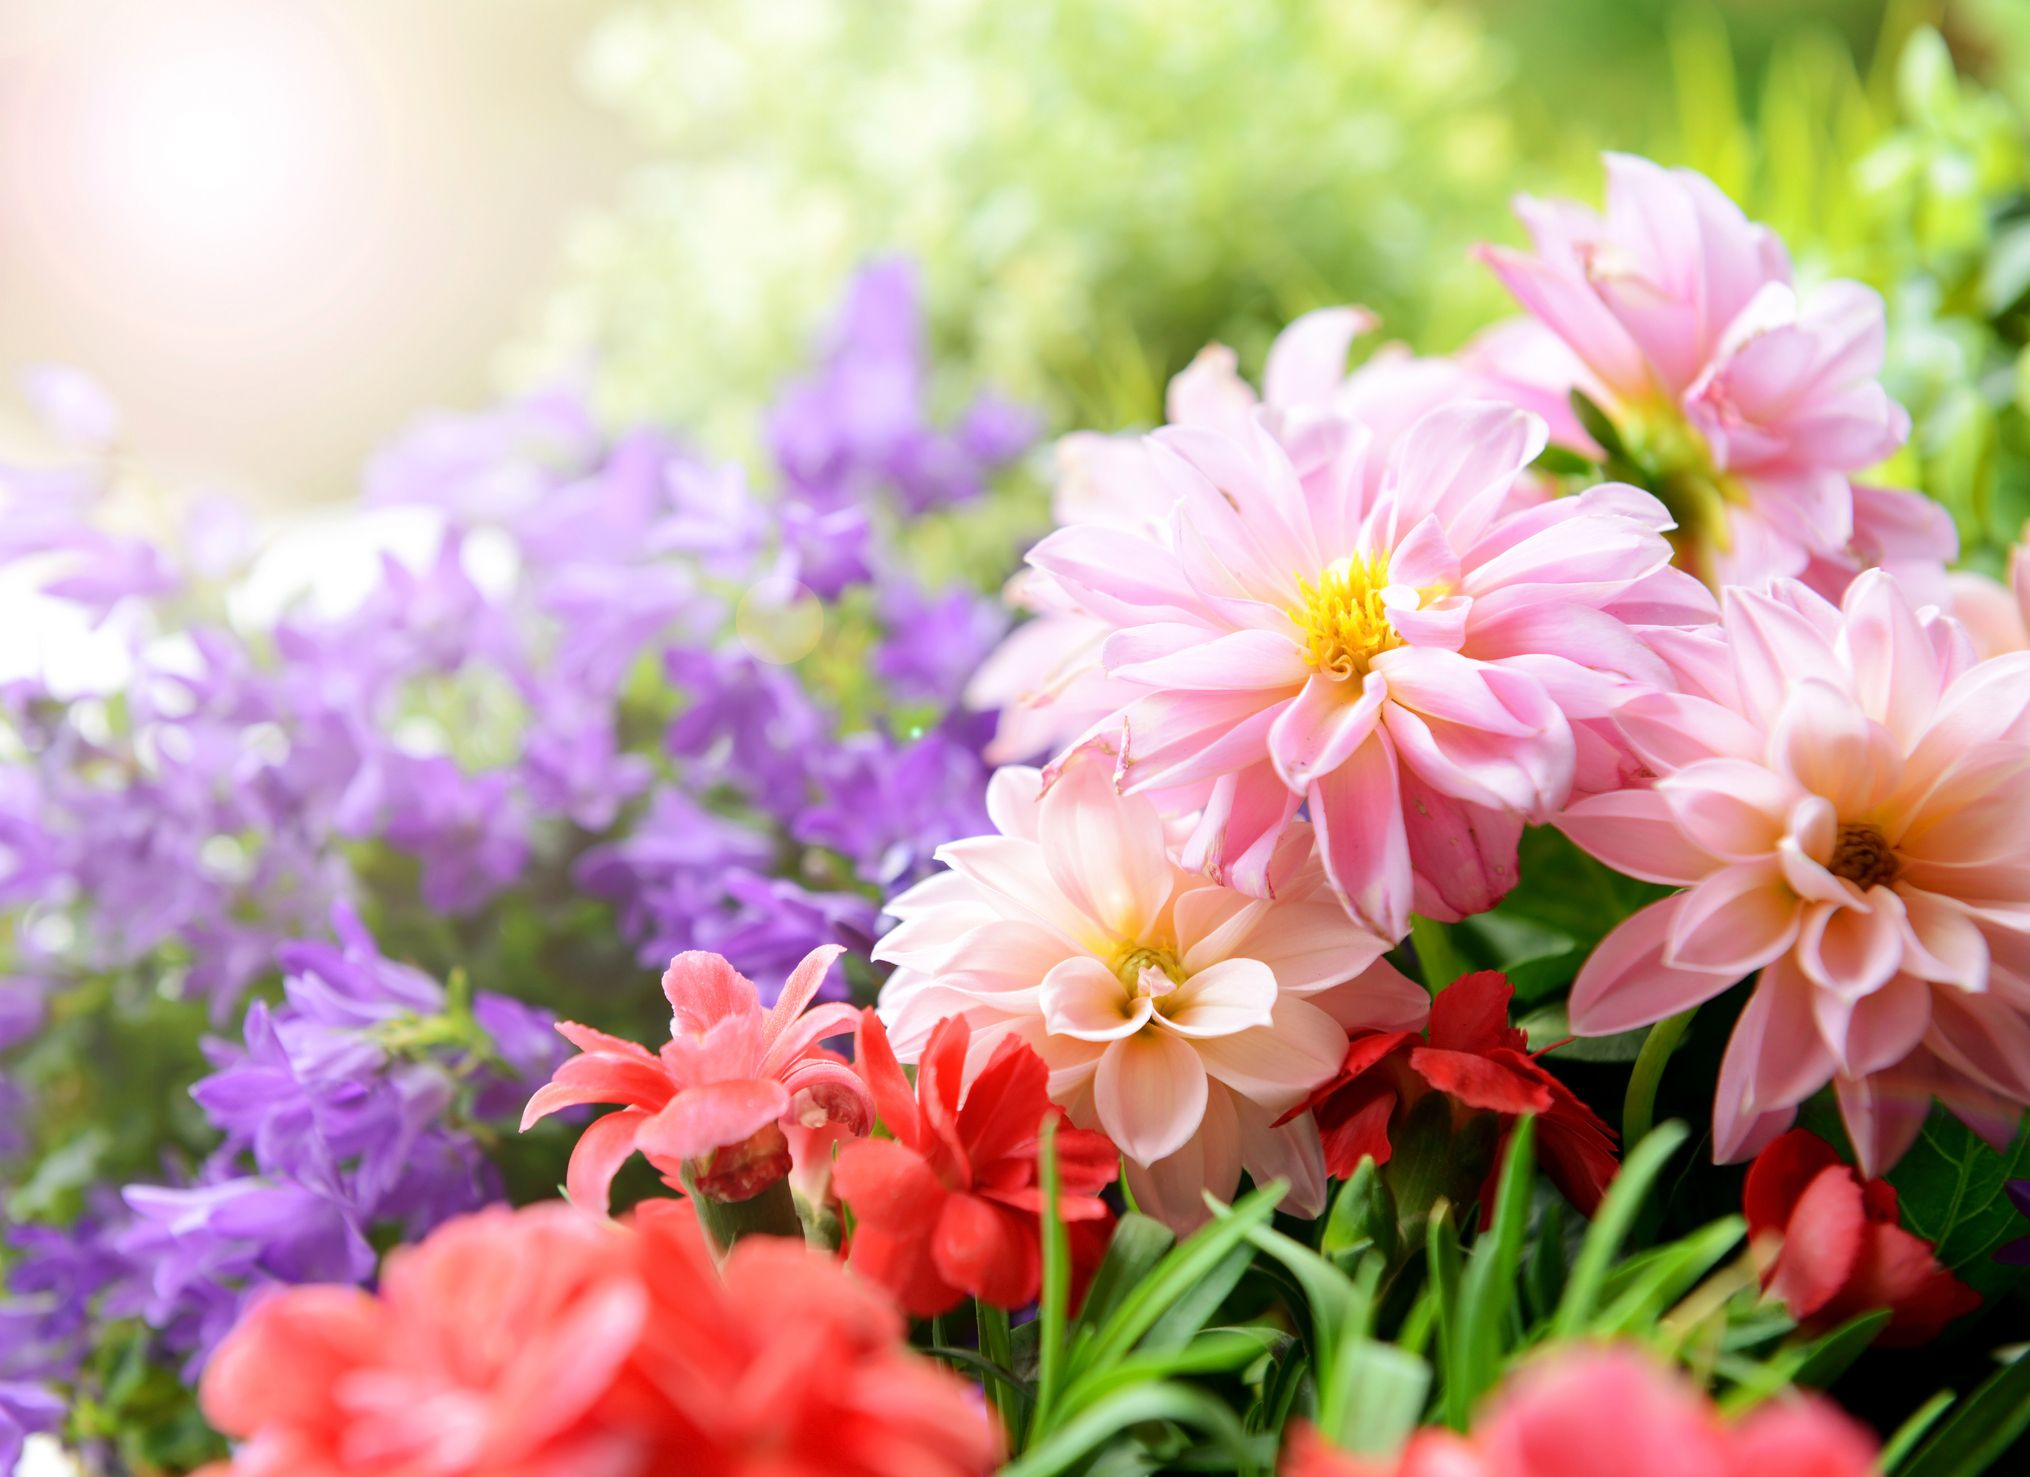 How to create a flower garden that blooms all year